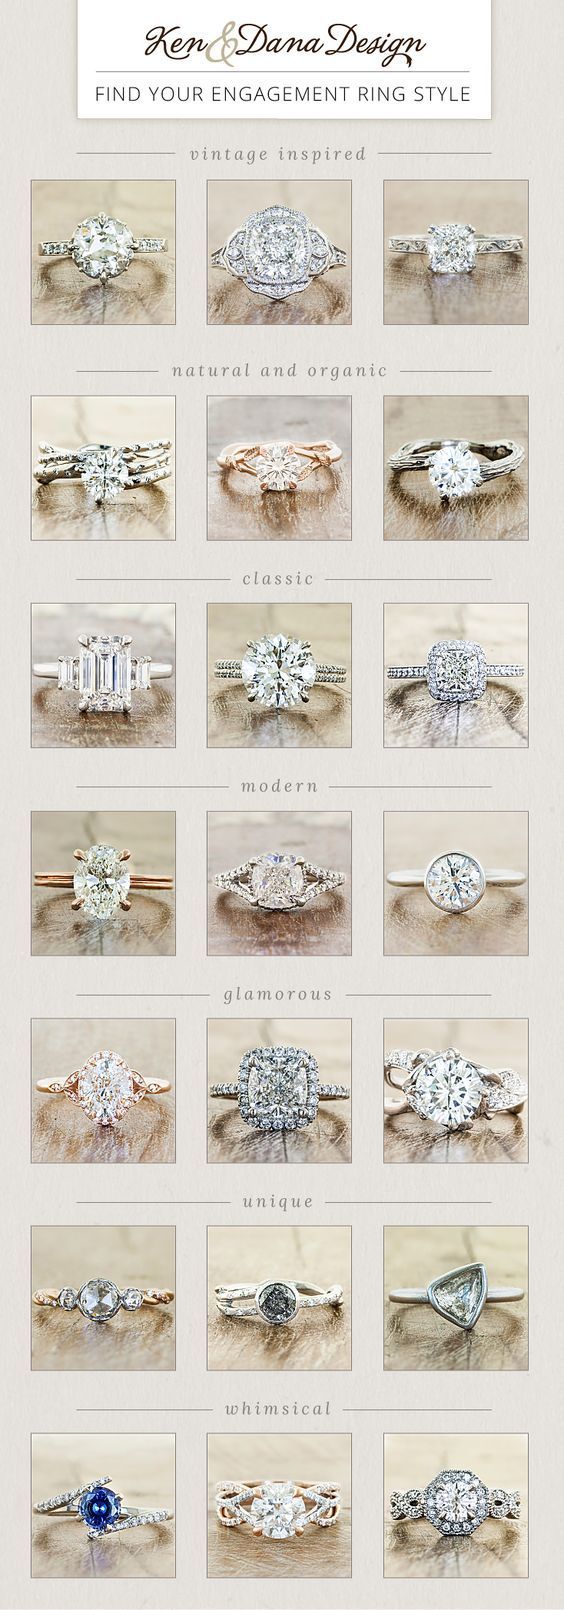 Find your engagement ring style – whether nature inspired, vintage, modern & more. by Ken & Dana Design. – Huguette Cyr